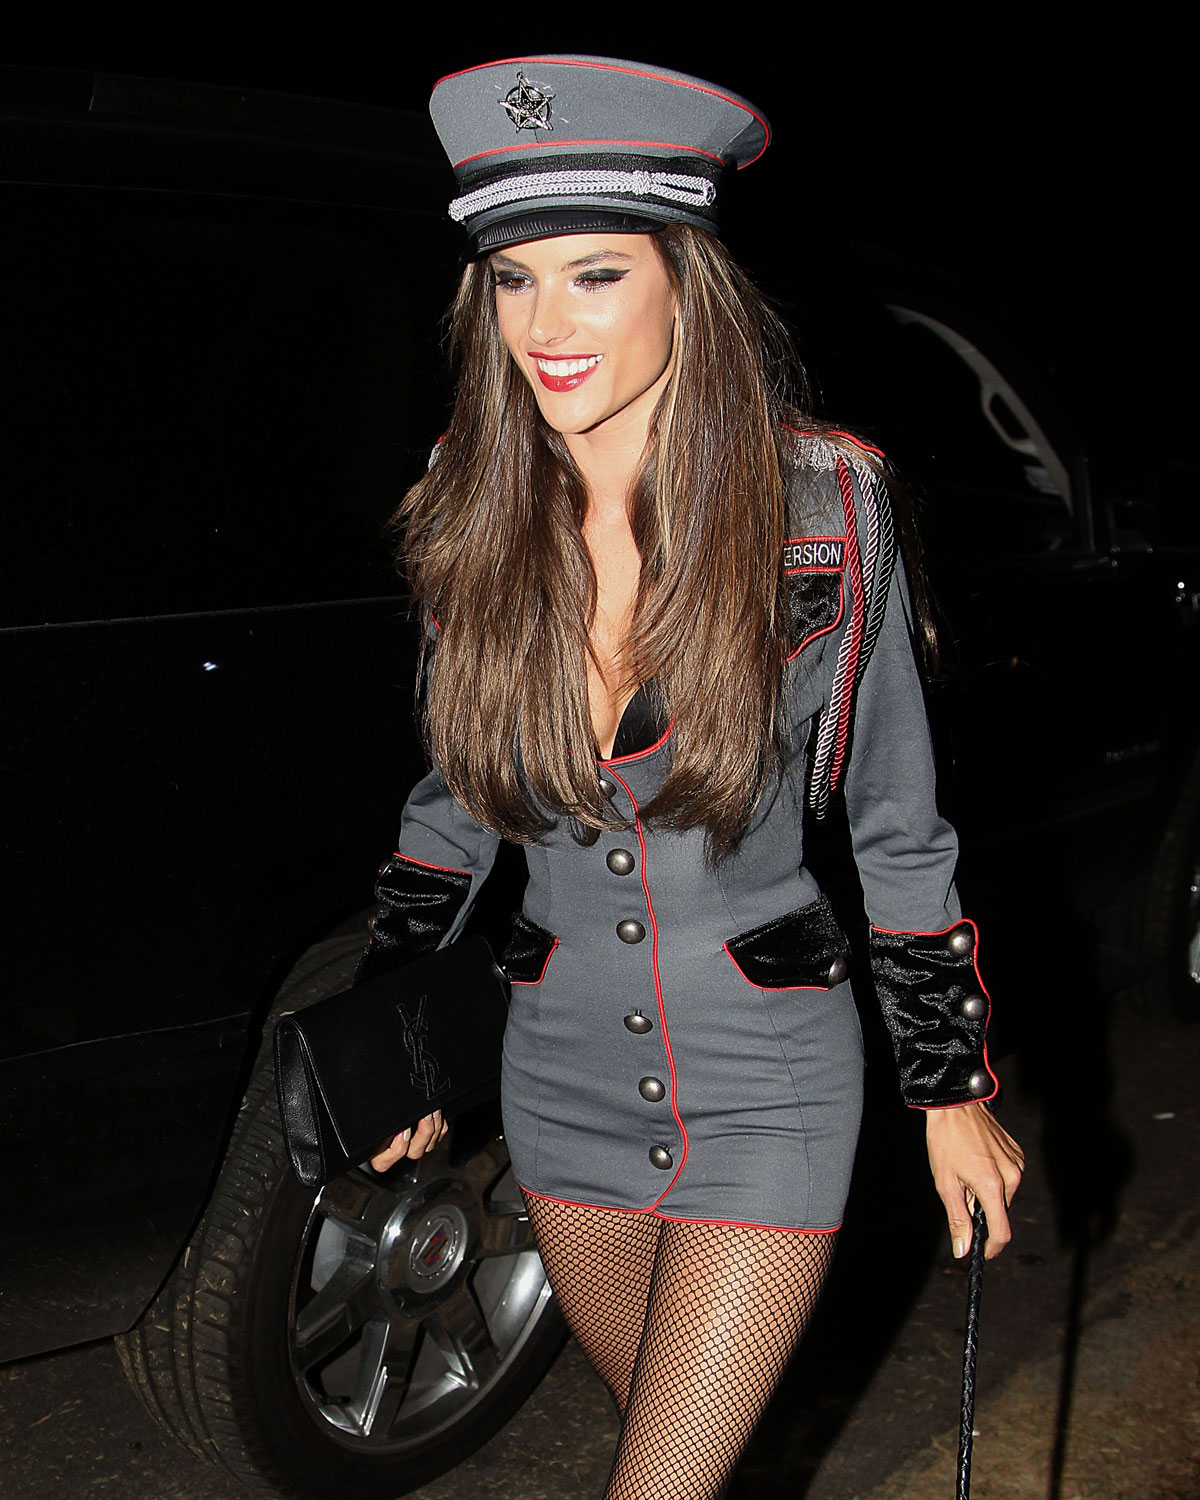 Molly sims archives page 2 of 7 hawtcelebs hawtcelebs - Alessandra Ambrosio Arriving At Halloween Party